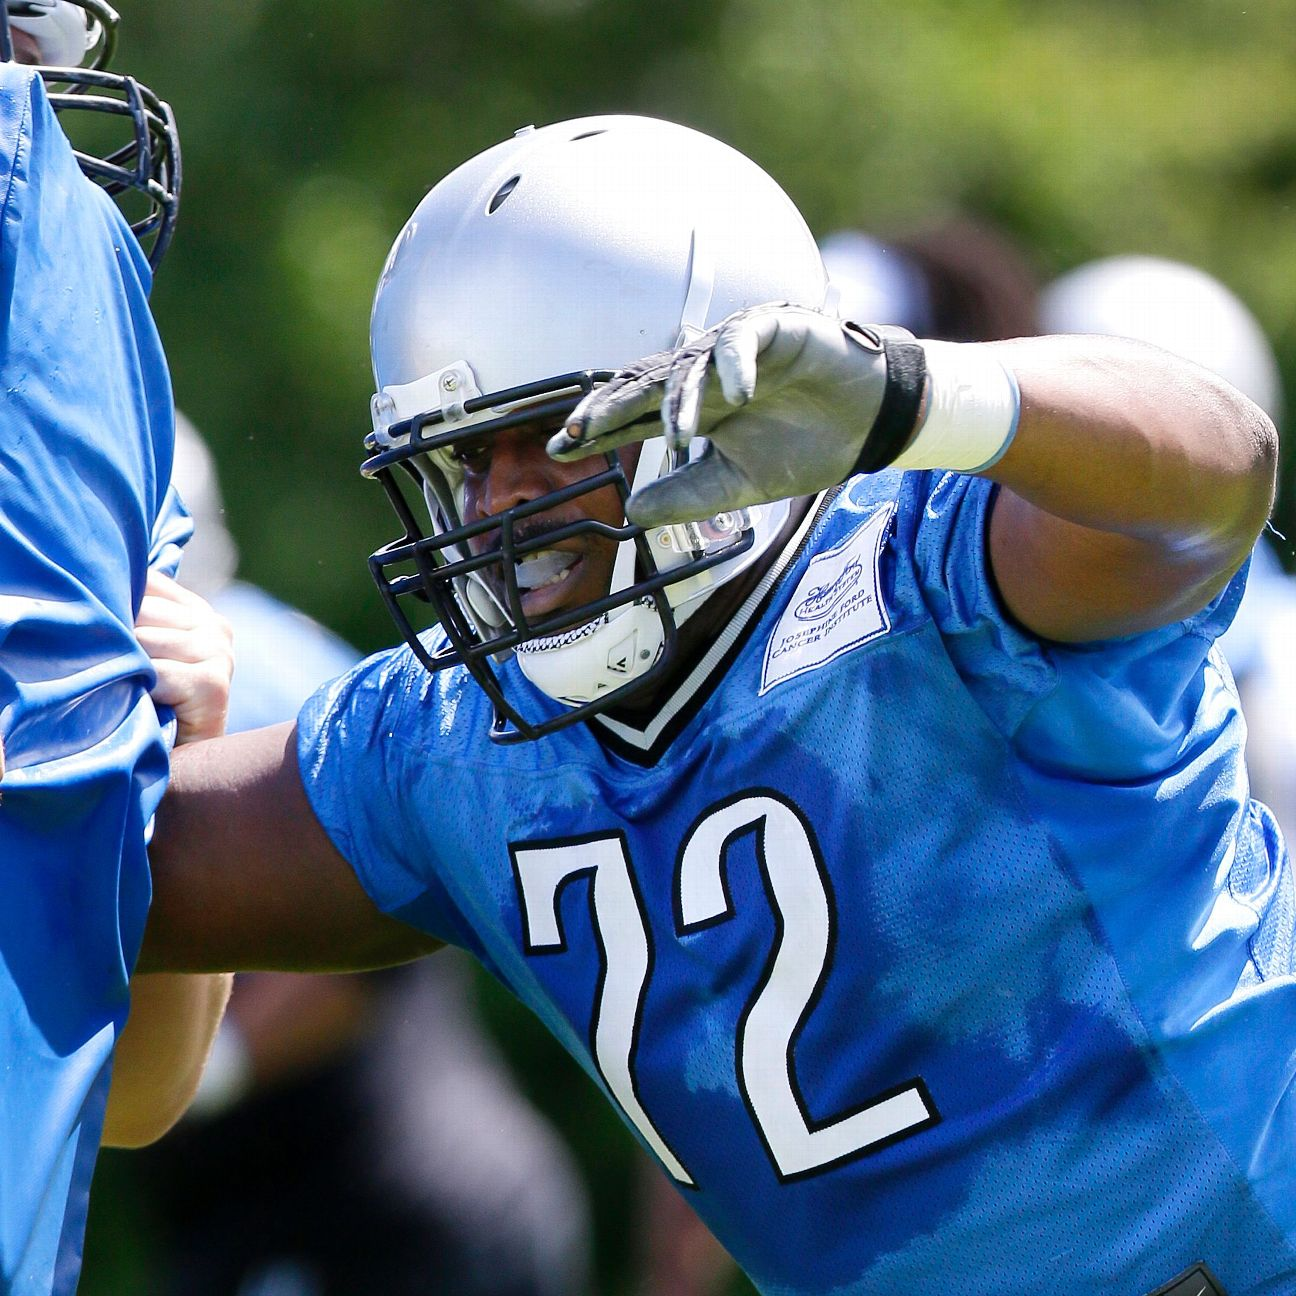 Lions first-round OL Laken Tomlinson eager for challenges